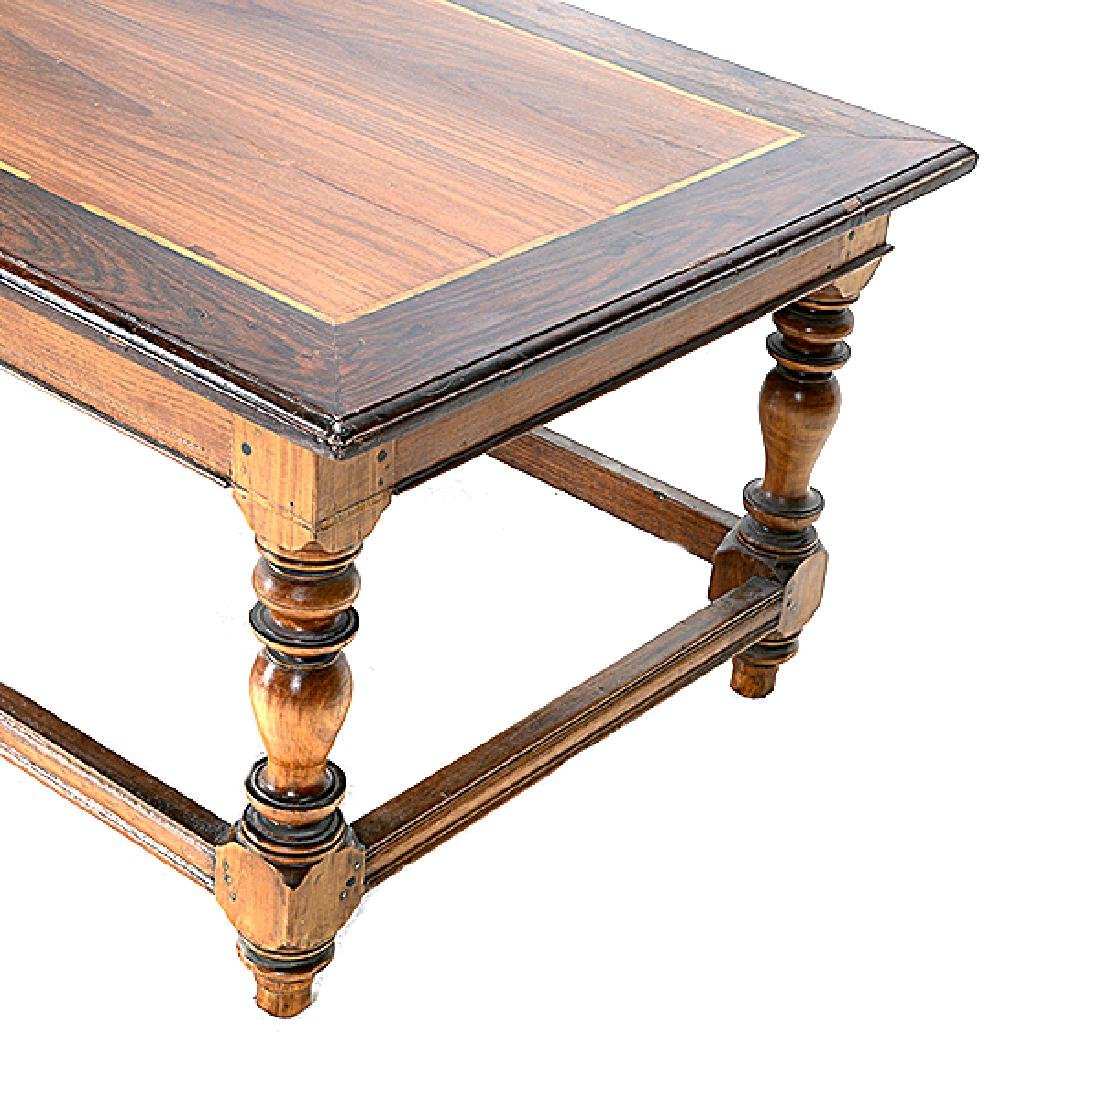 Anglo Indian Ebonized and Inlaid Teak Low Table - 2